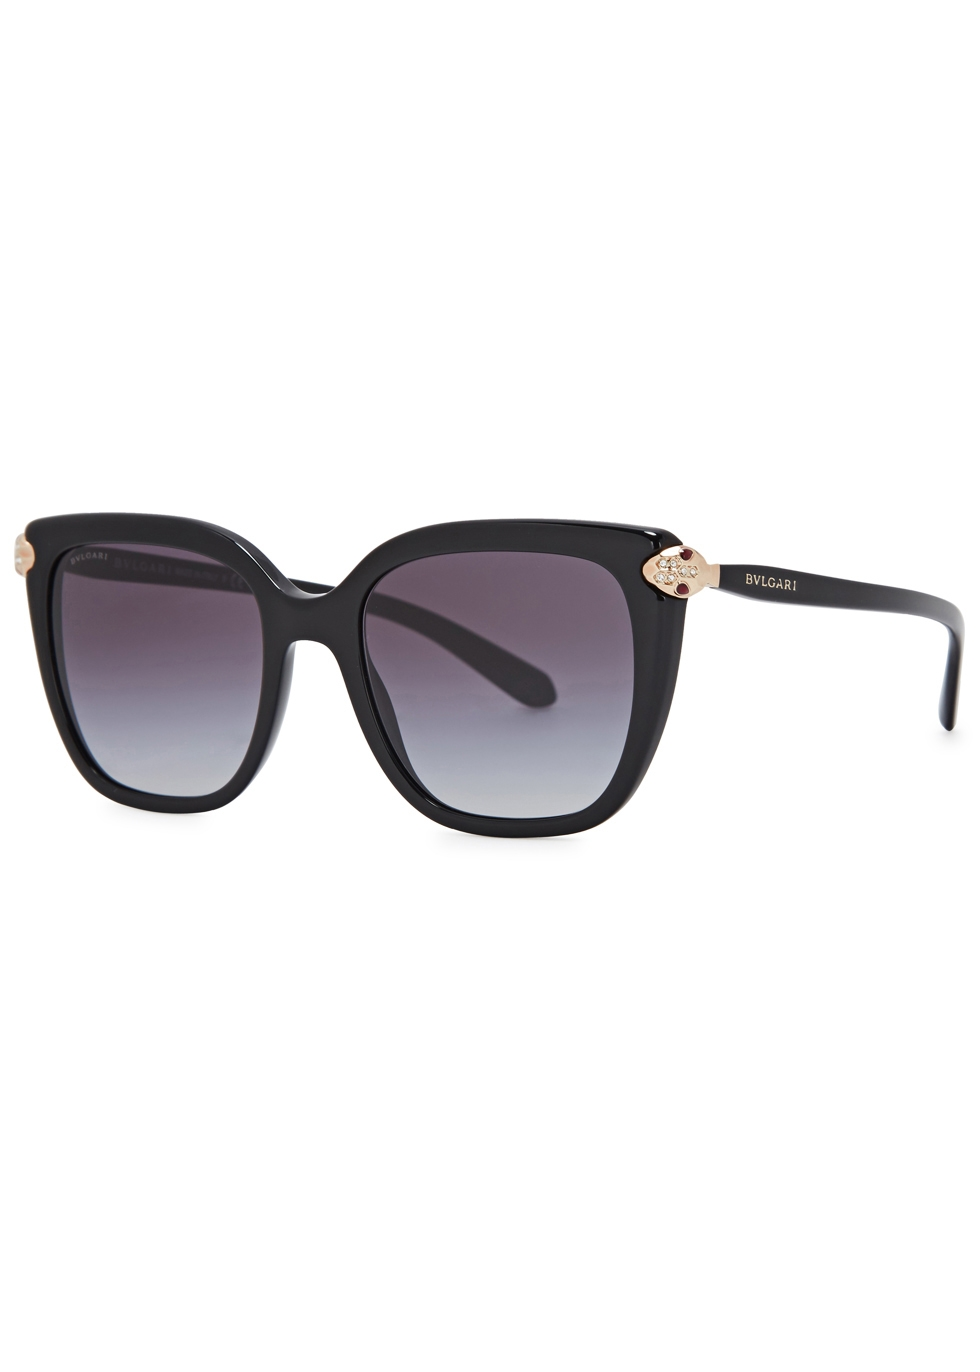 BVLGARI BLACK OVAL-FRAME SUNGLASSES